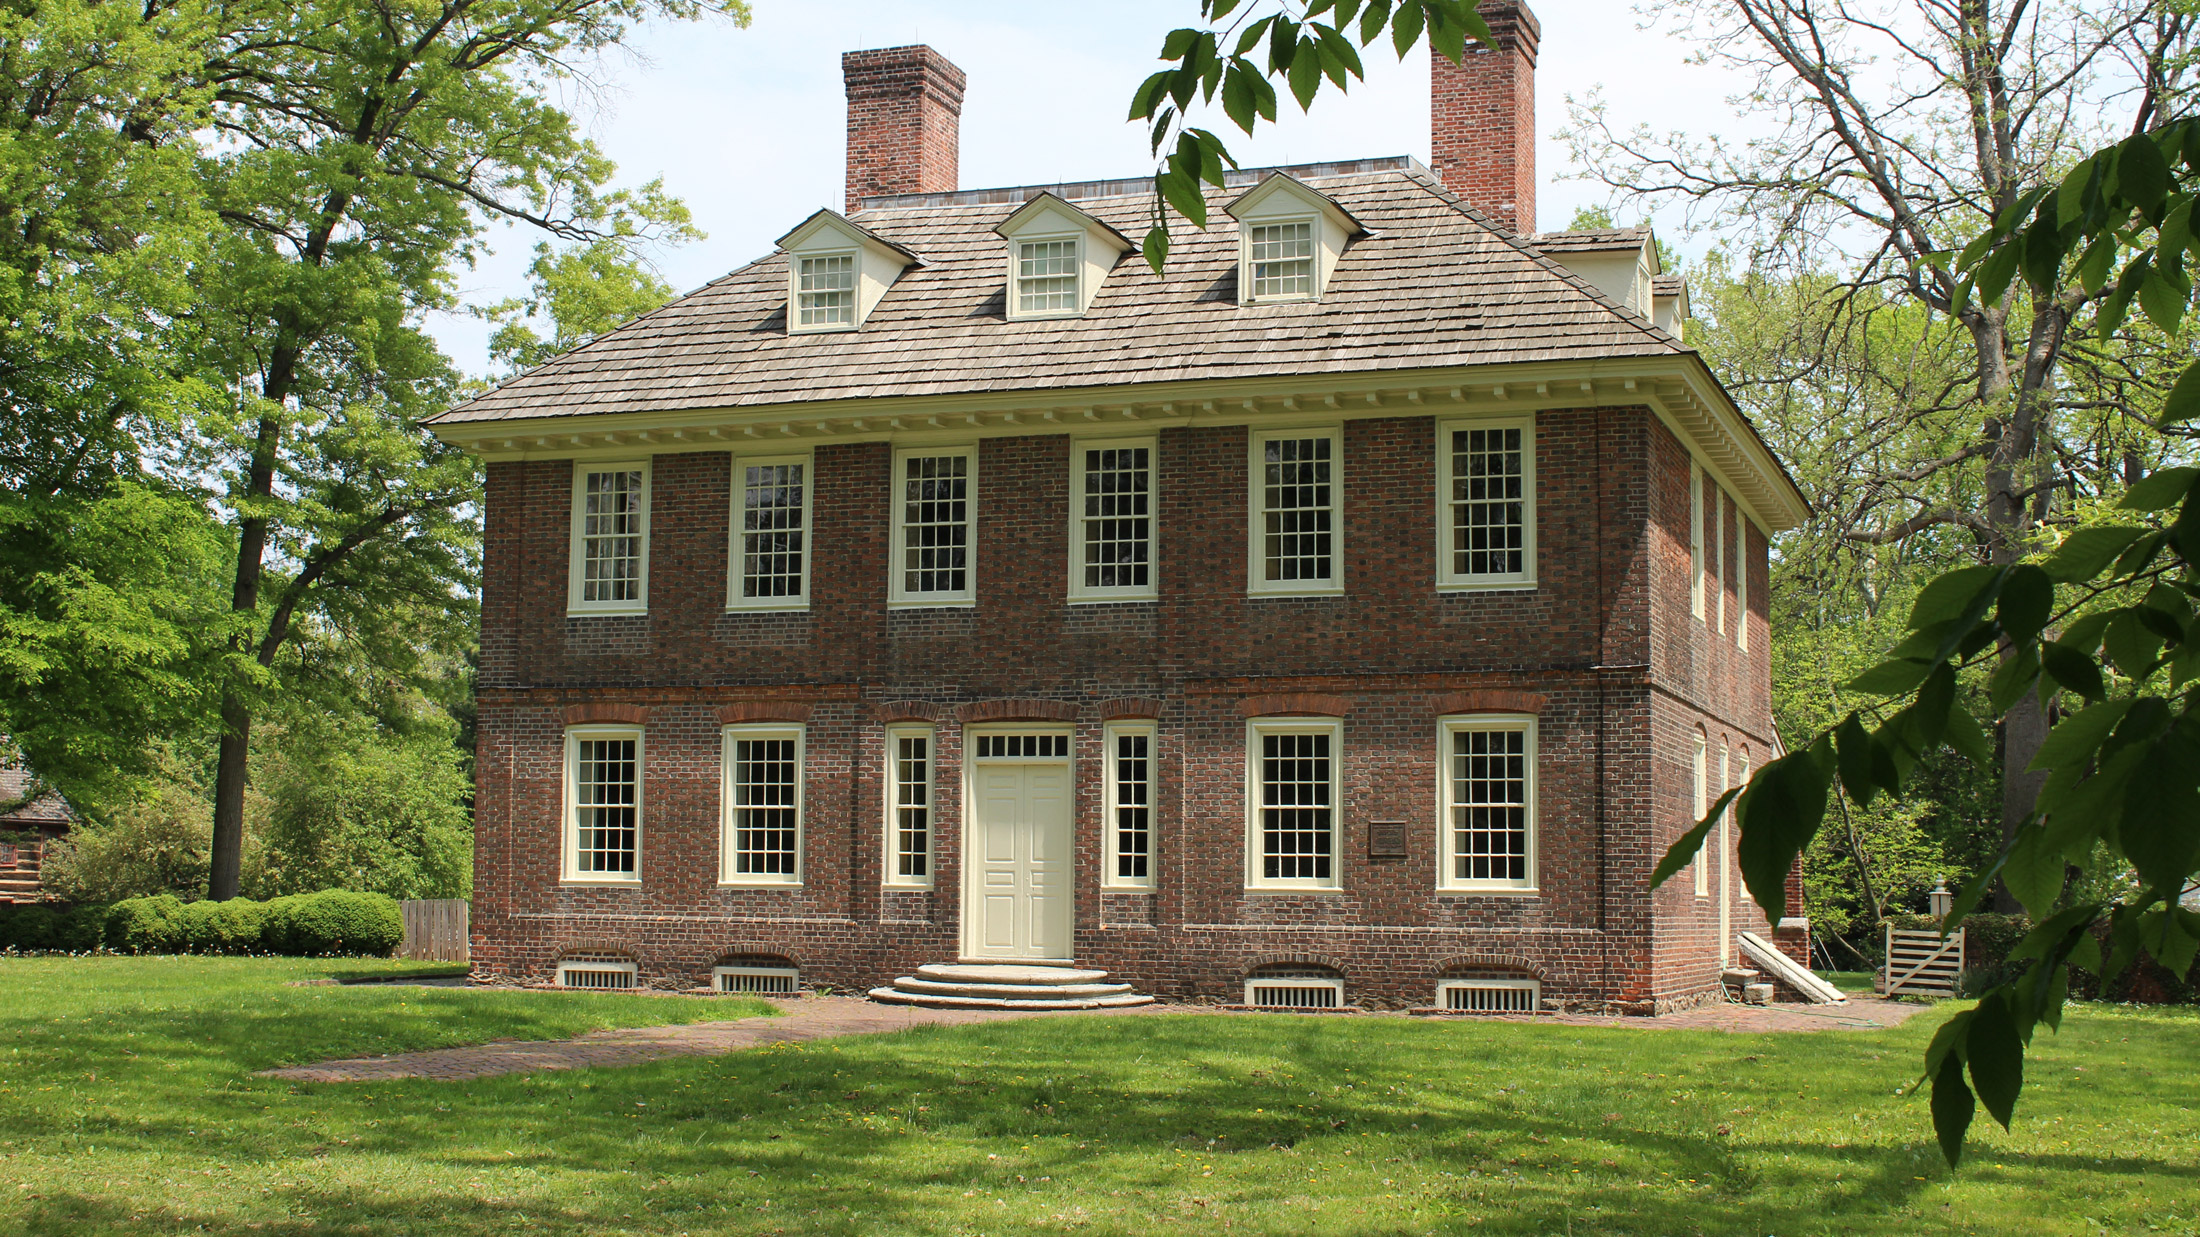 Stenton Historic Home in Germantown, Philadelphia, Pennsylvania